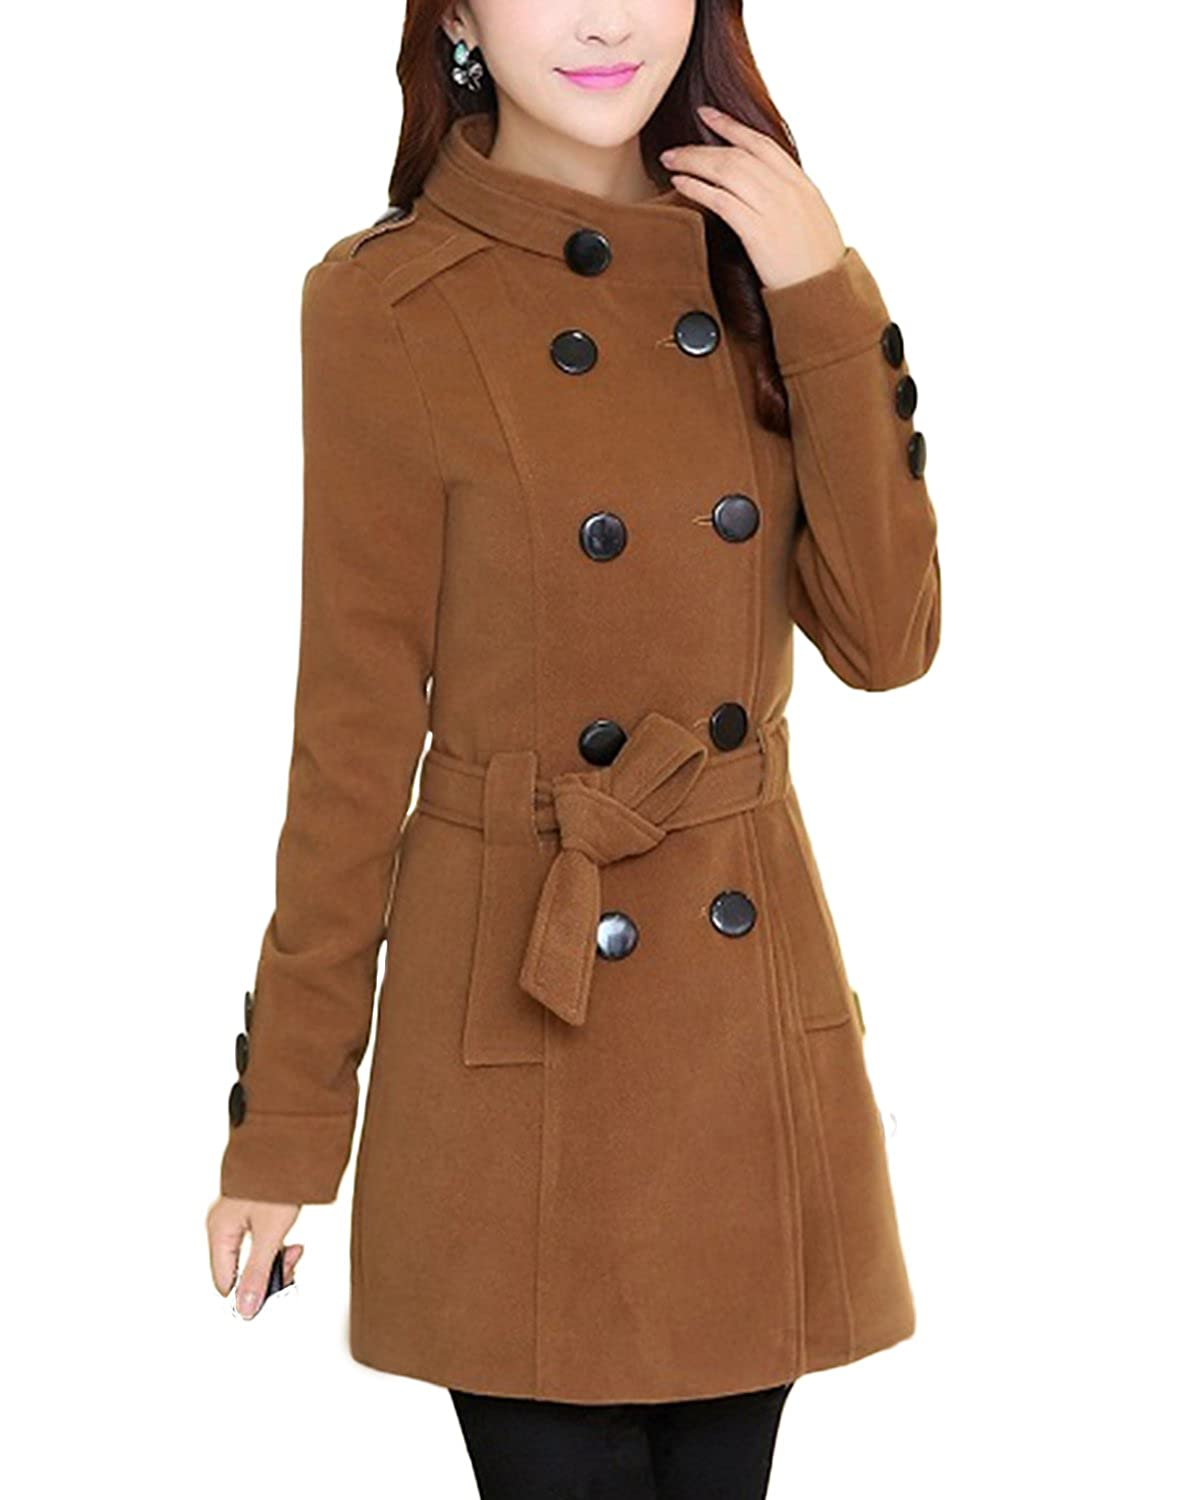 xiaoming Women Winter Double Breasted Thicken Wool Trench Coat with Belt